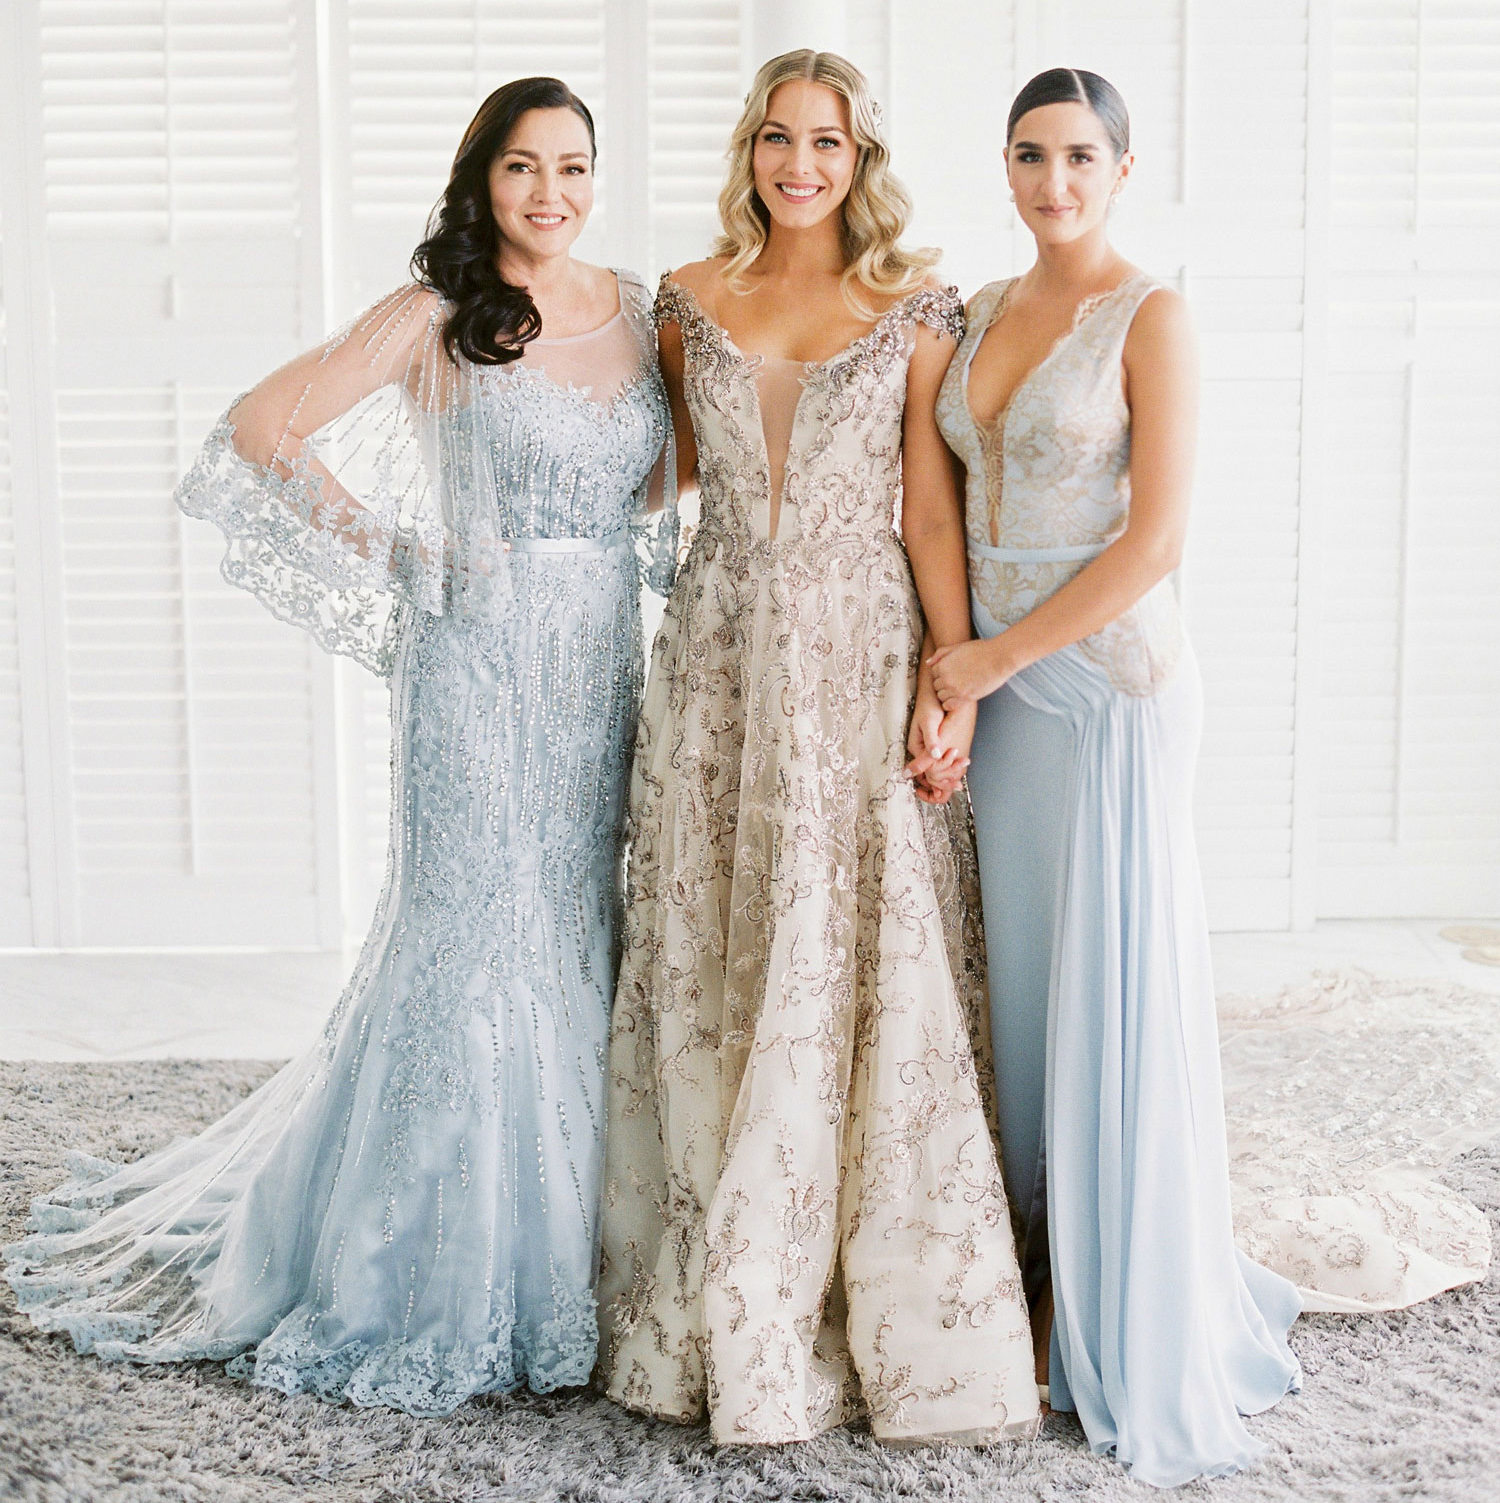 Mariana Vicente Hernandez with mother and sister, finding a mother of the bride dress